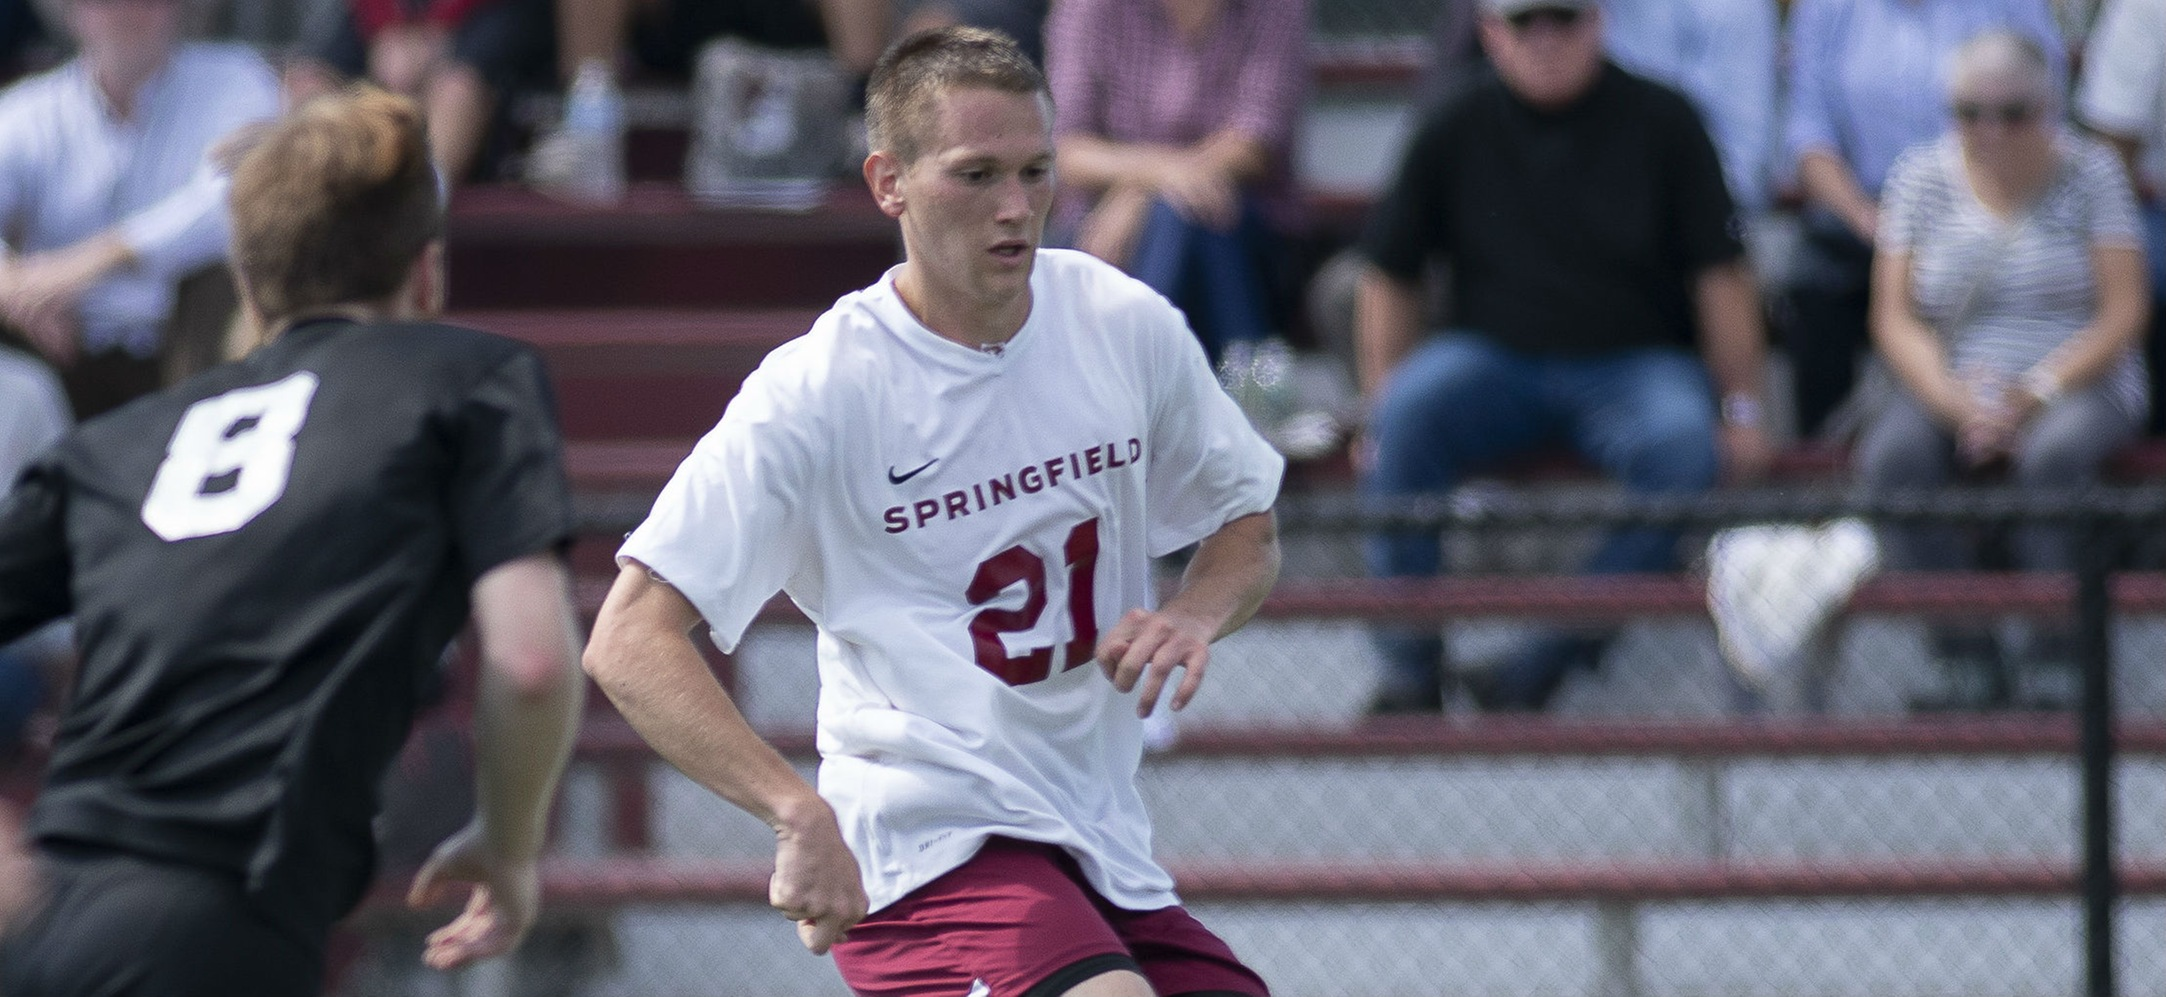 Two Second-Half Goals Lifts Men's Soccer Past Emerson, 3-1